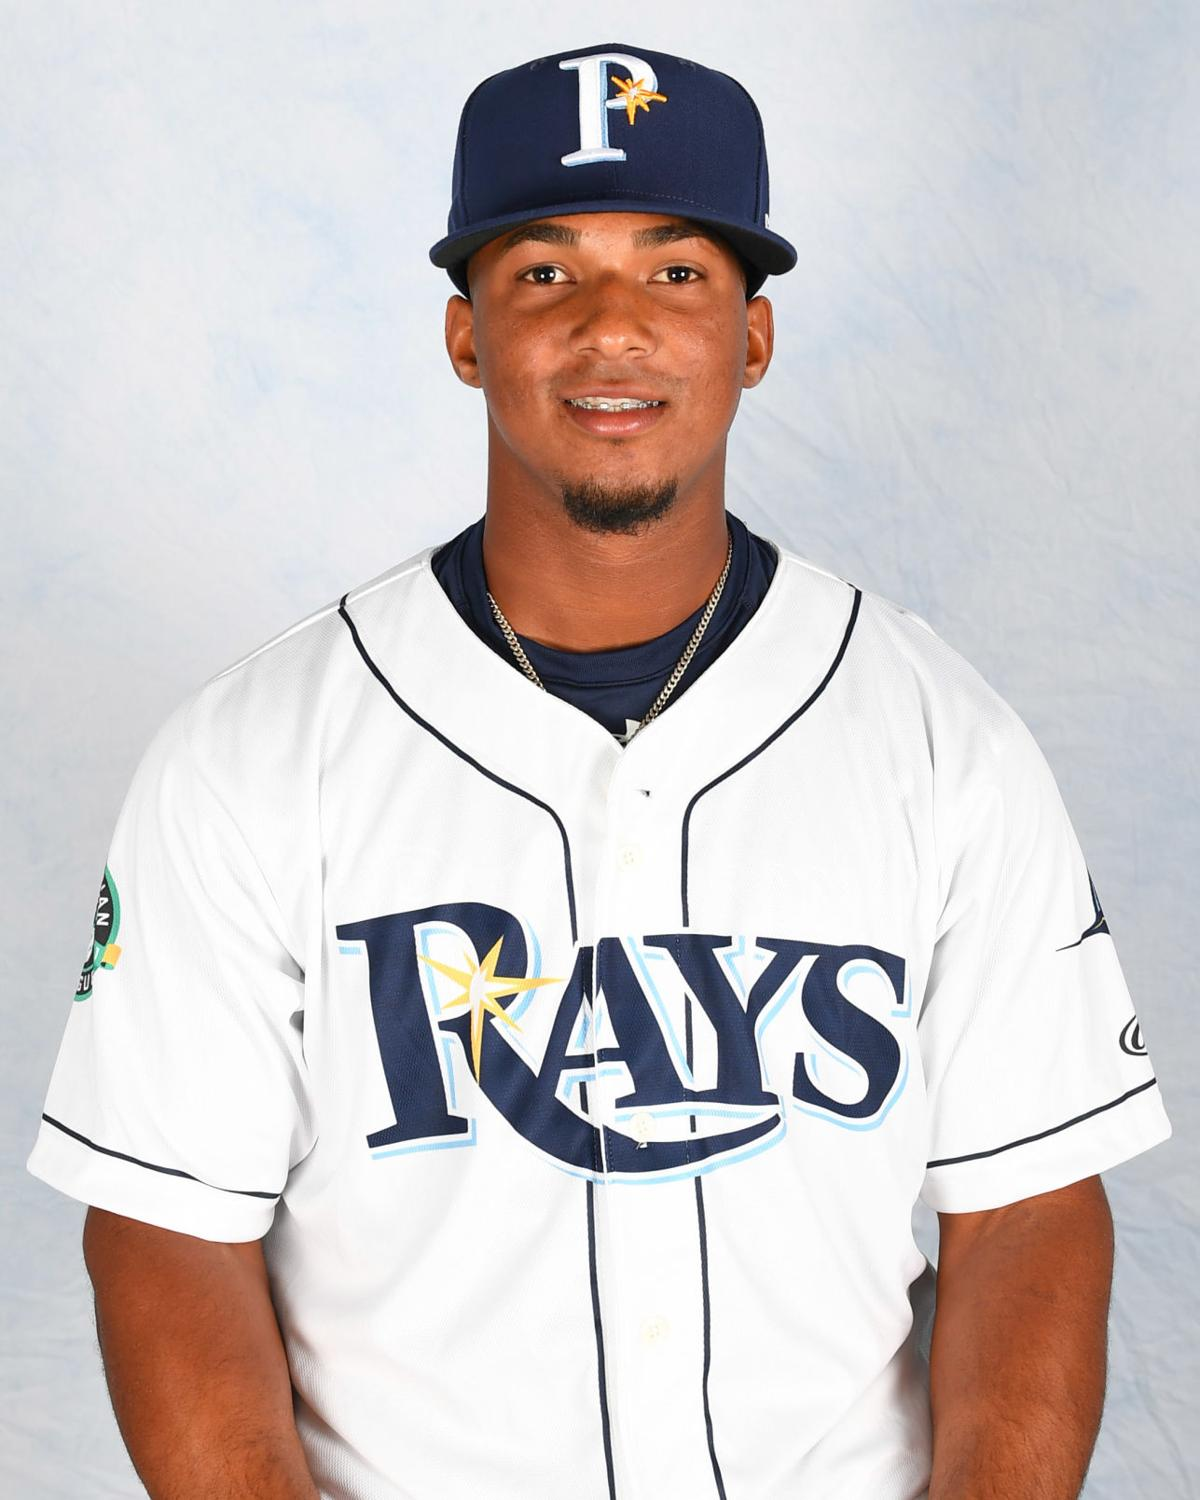 Franco is Appy League player of the week | Sports | bdtonline.com